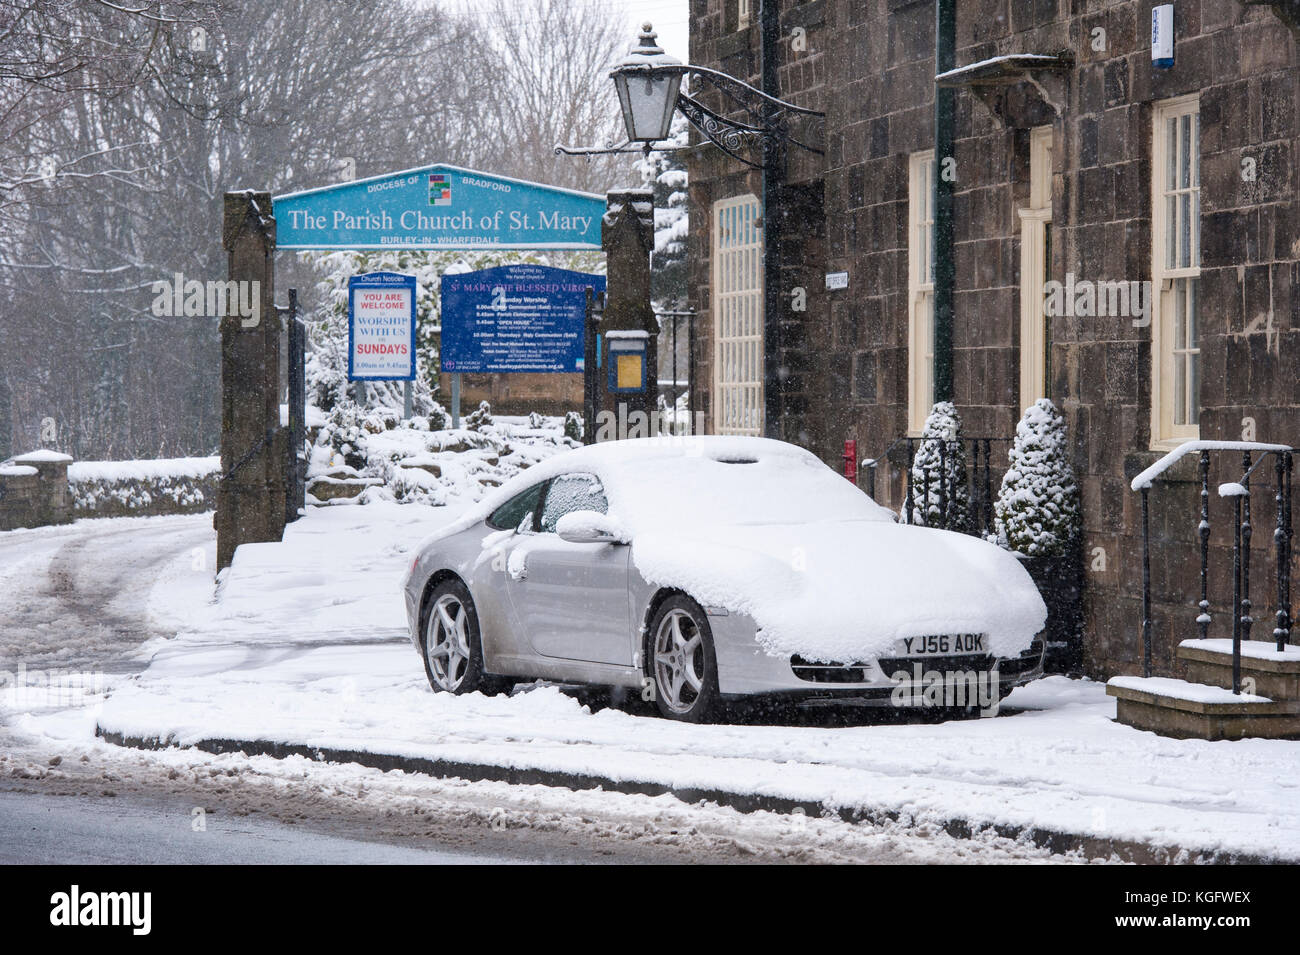 Cold, snowy winter day with snow-covered car parked outside stone cottages & church gate in village - Burley-in Stock Photo